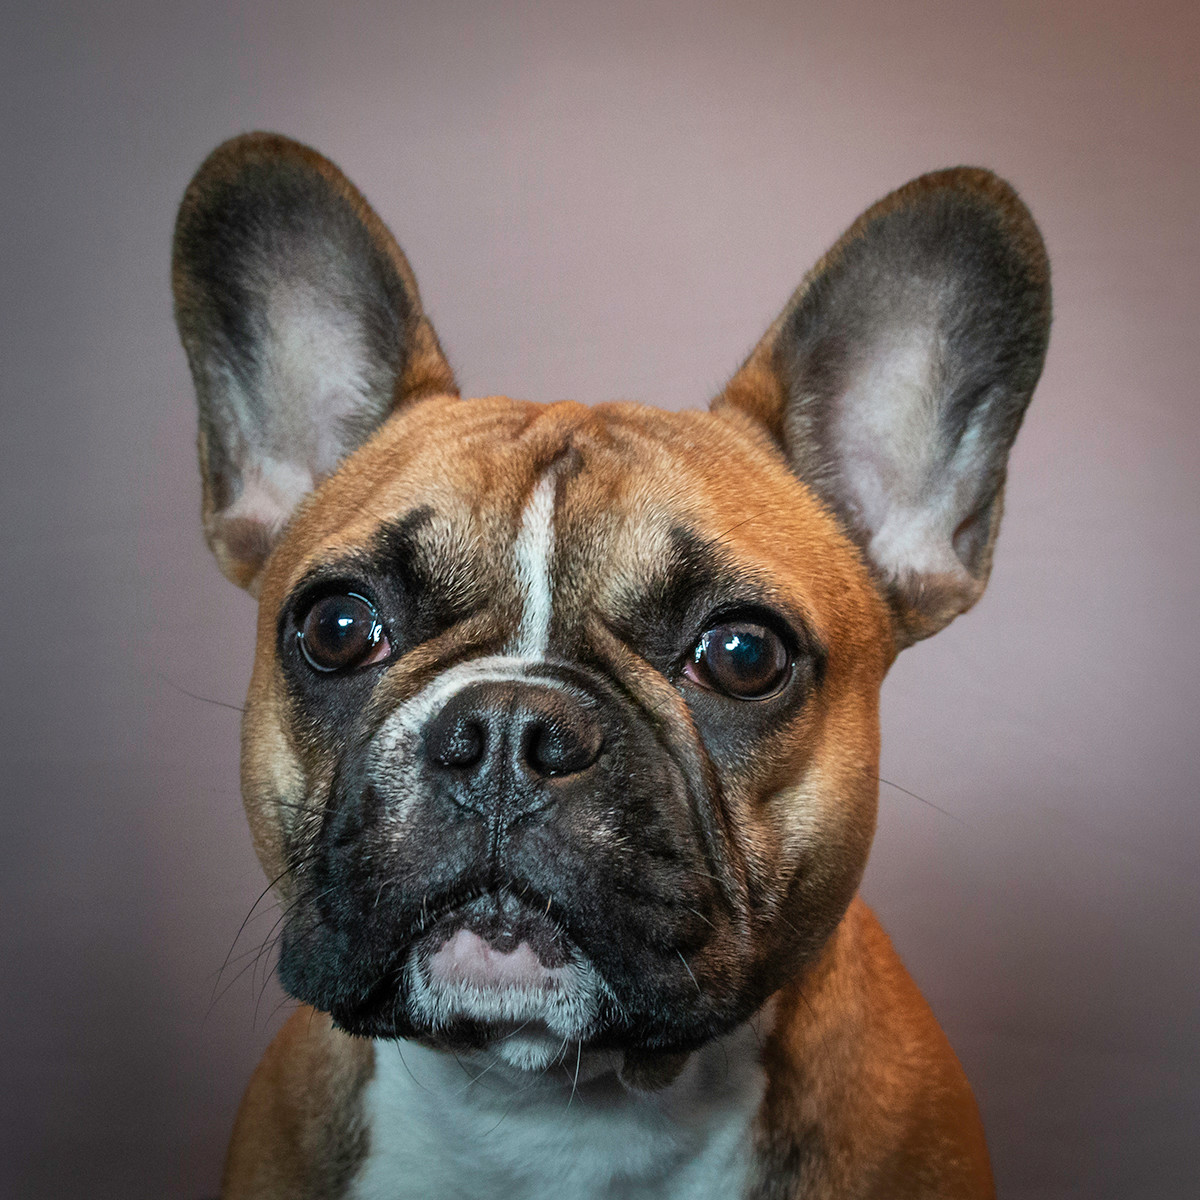 PDI - Fancy Frenchie by Chelle McGaughey (9 marks)